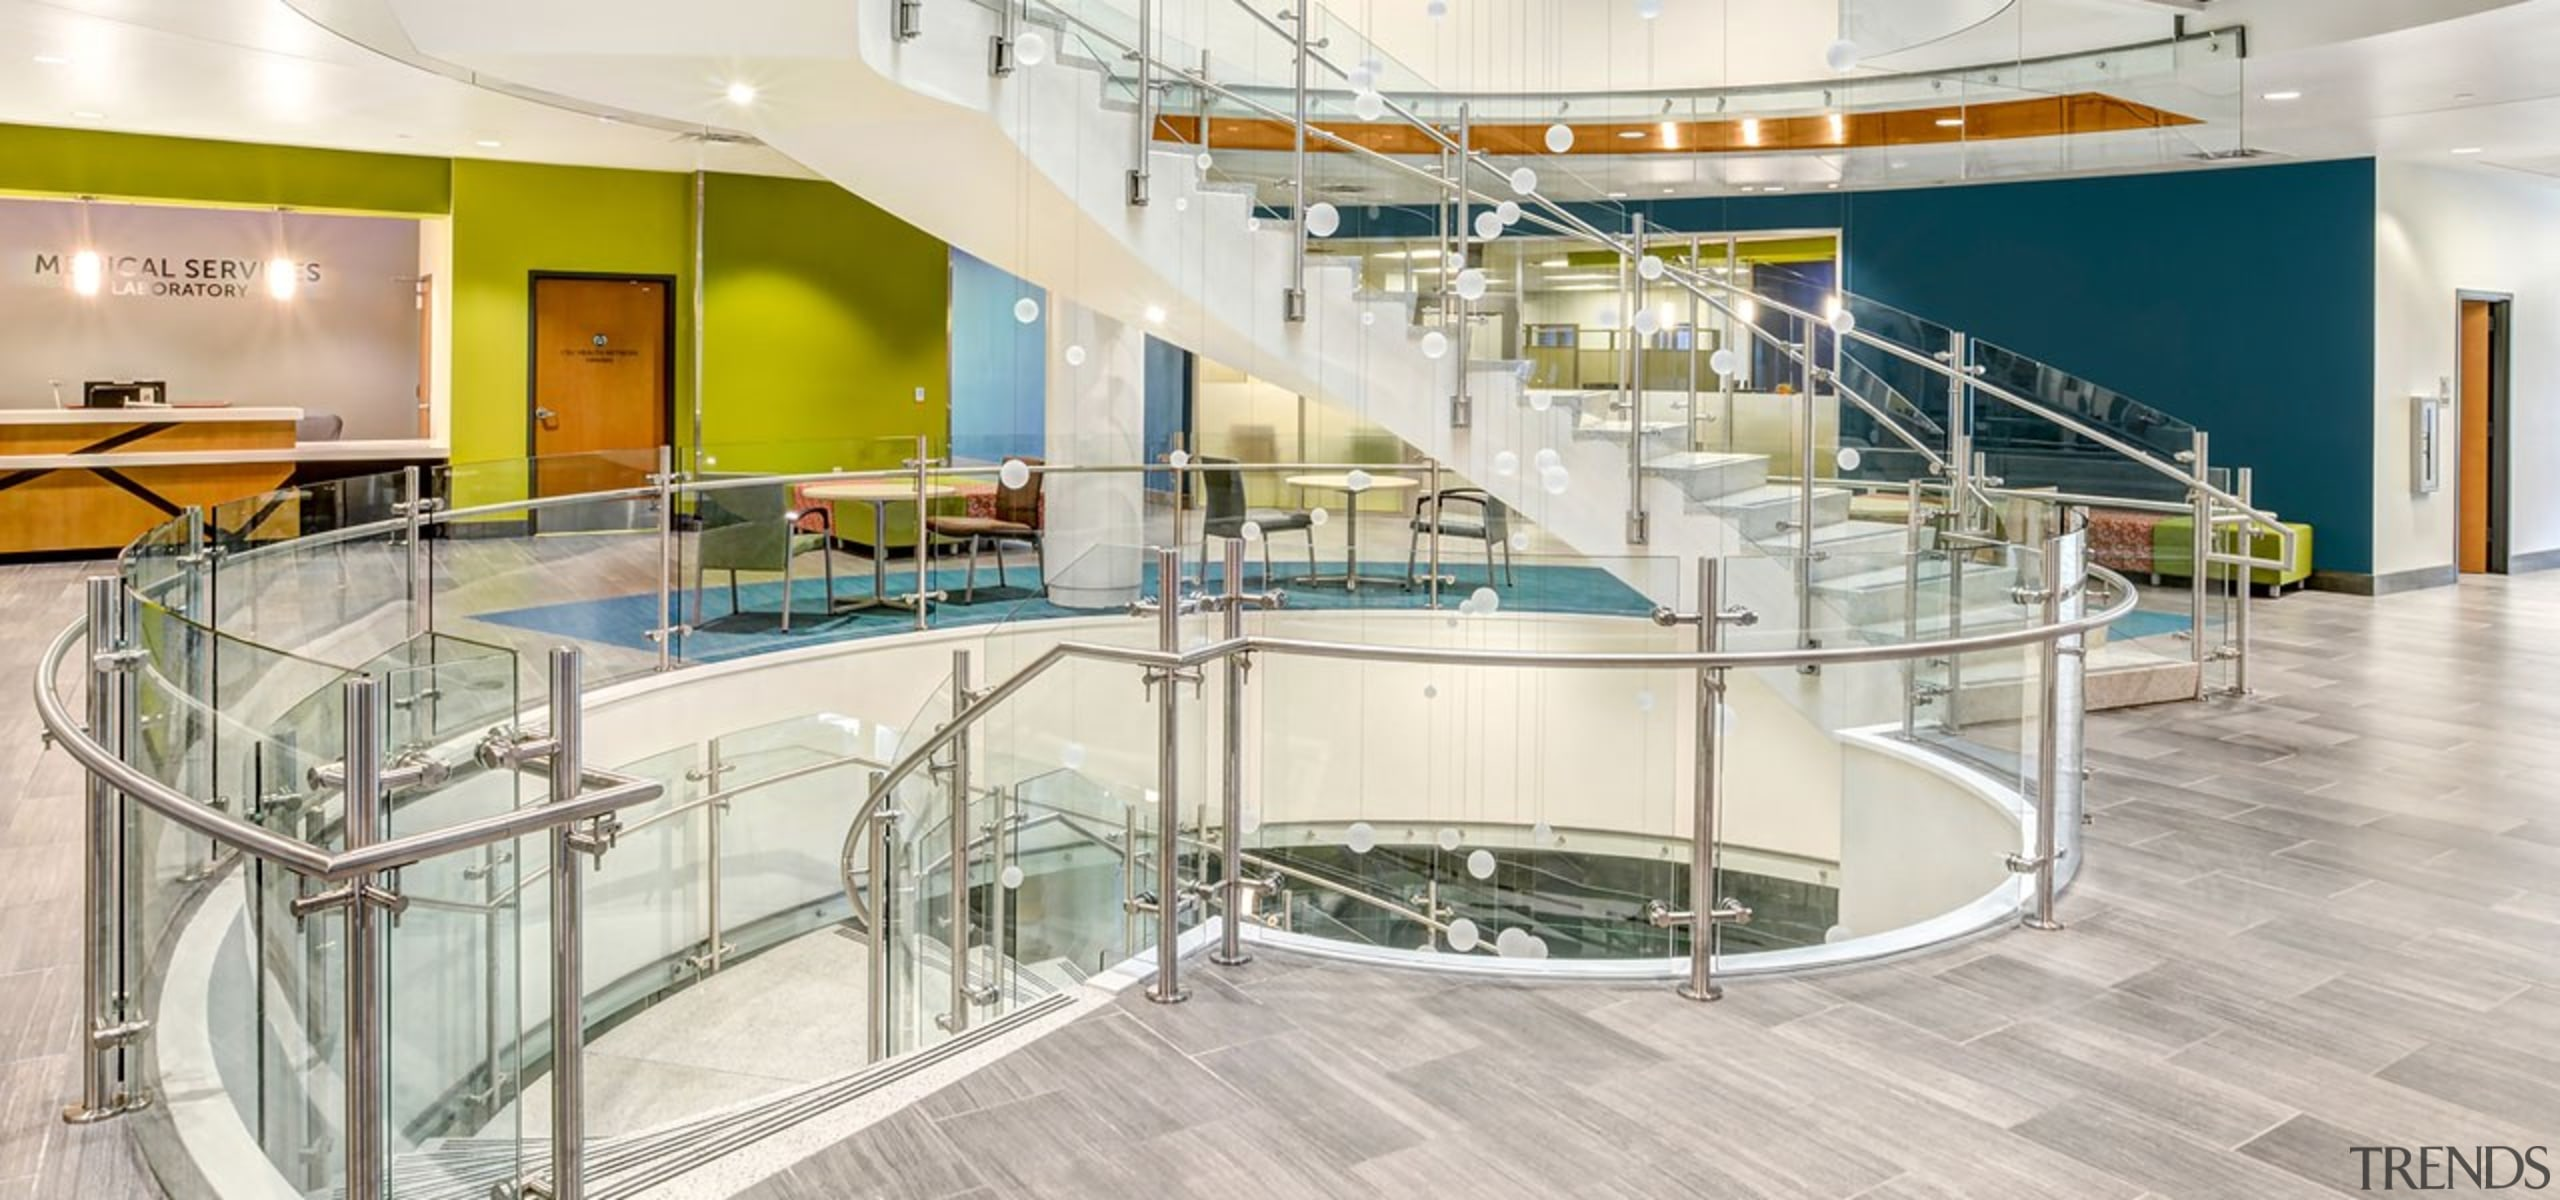 Colorado State University5 - architecture | building | architecture, building, daylighting, floor, glass, handrail, interior design, leisure centre, metal, property, real estate, room, stairs, white